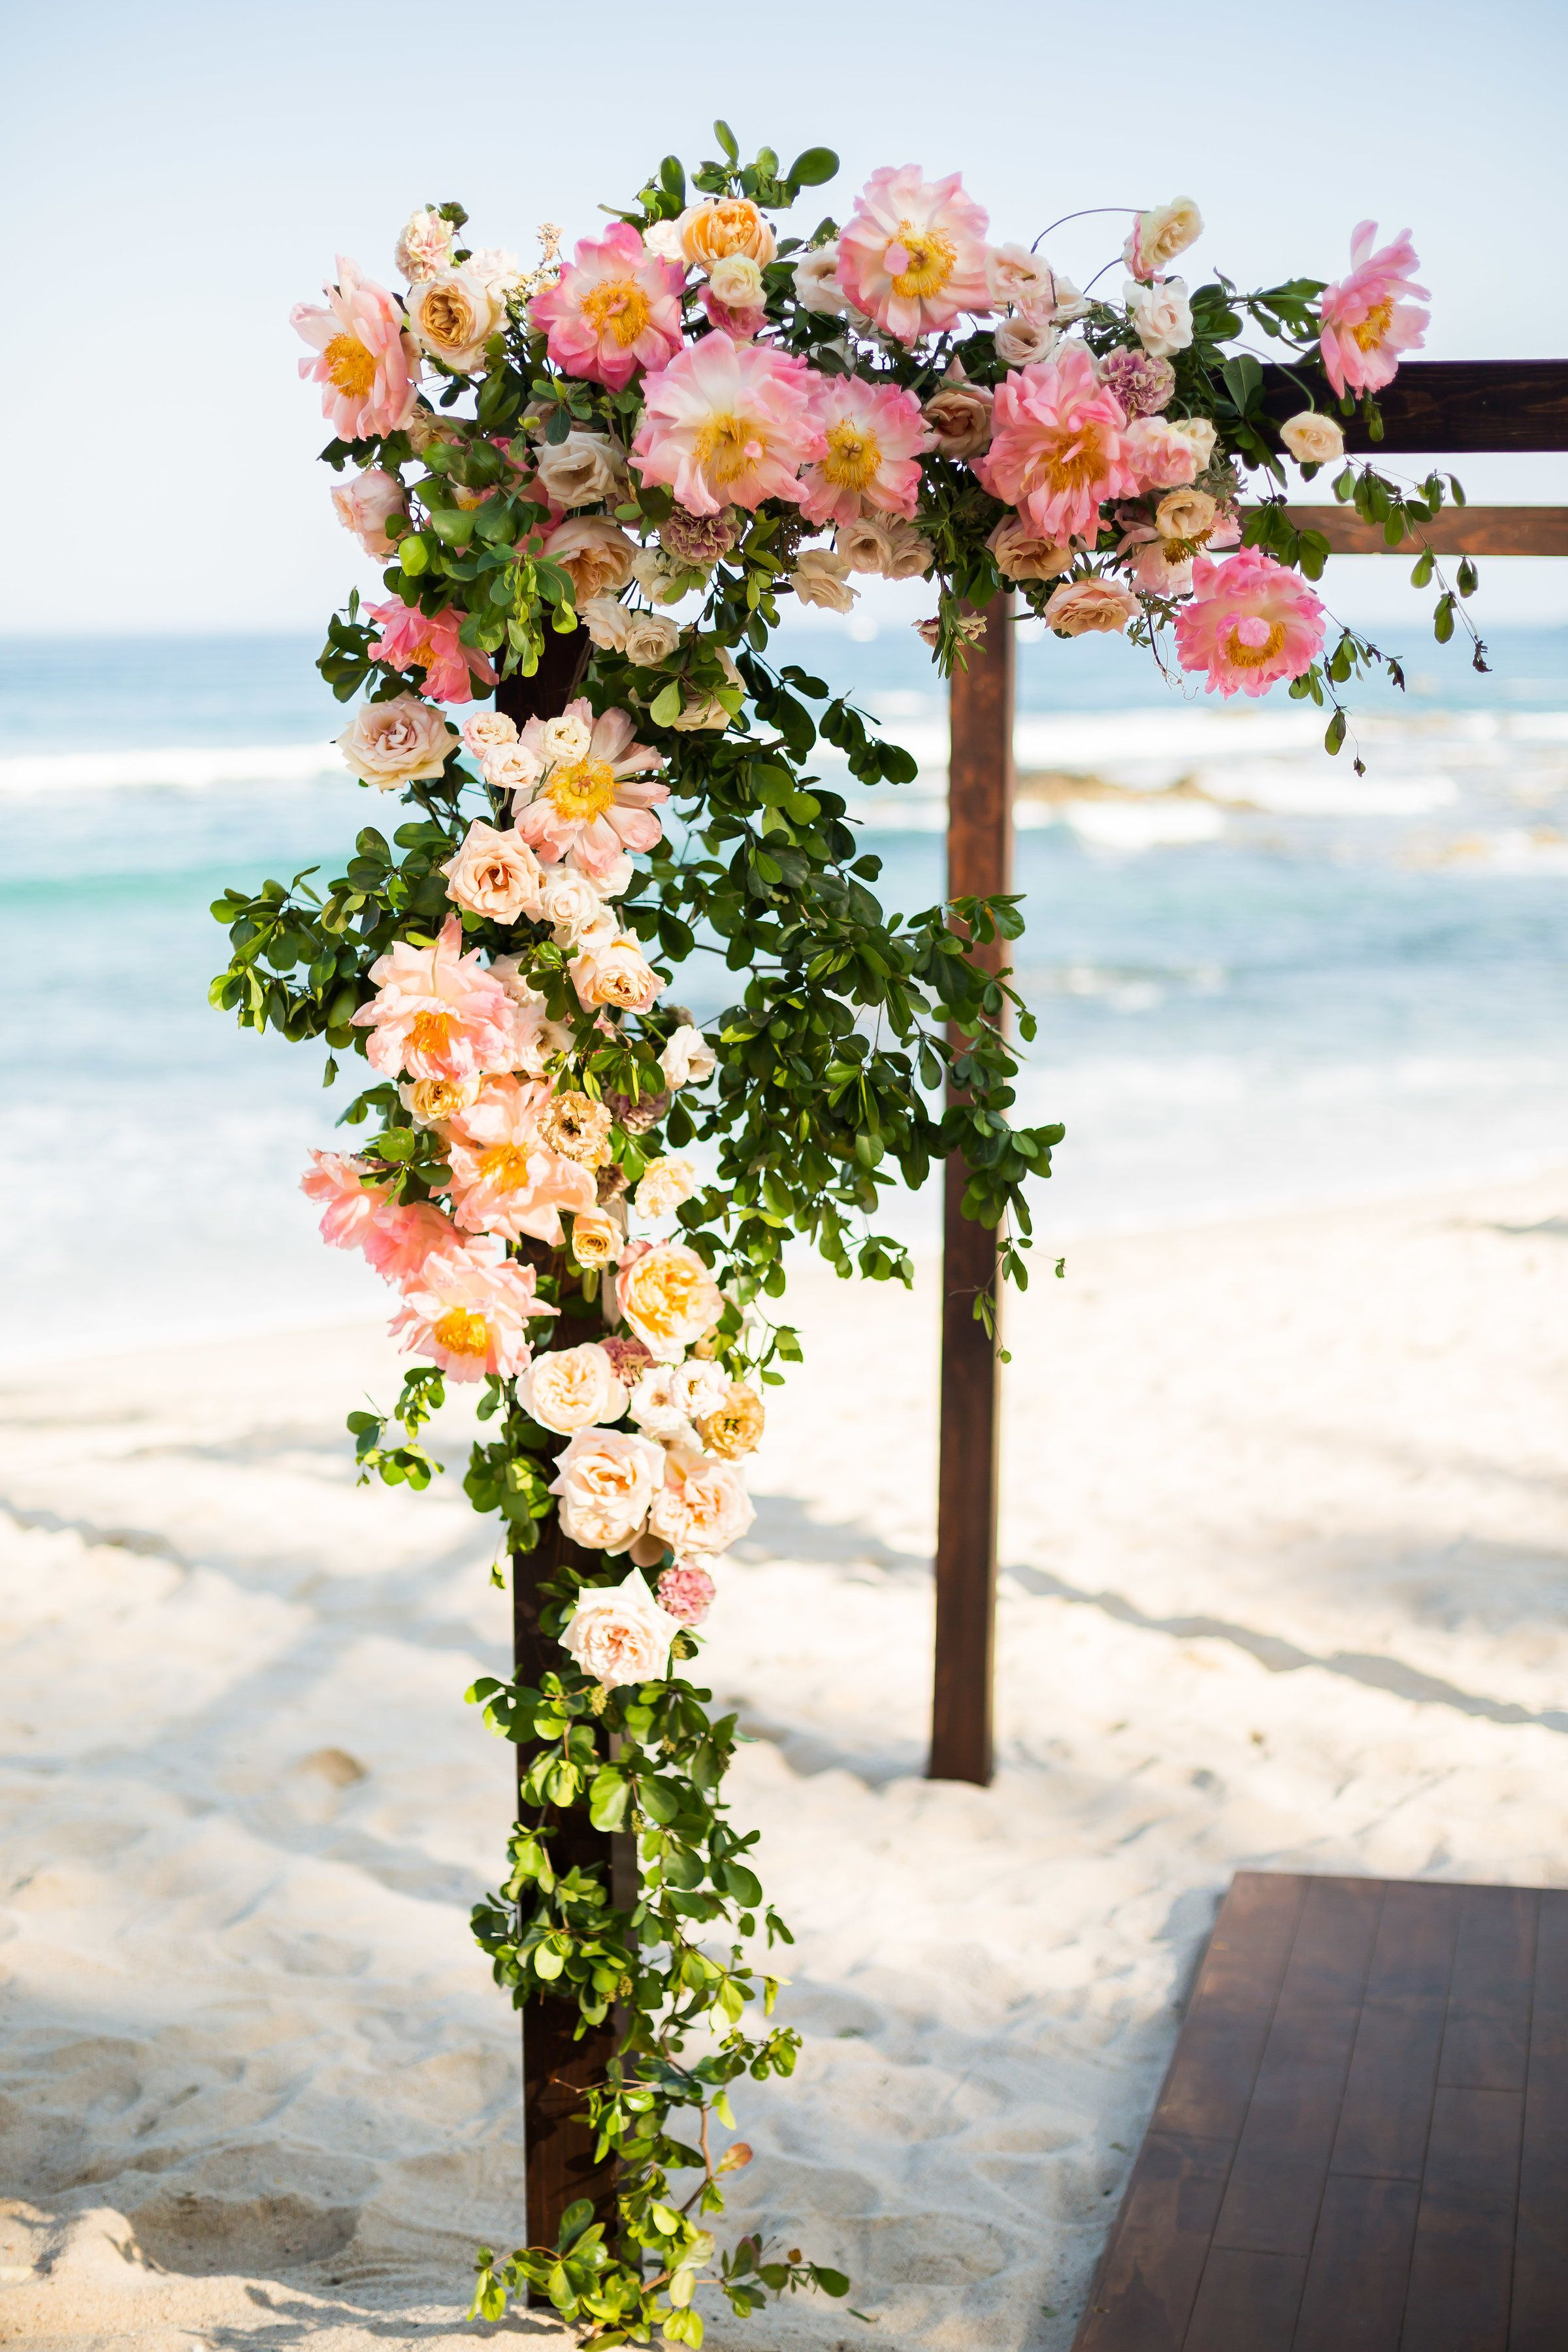 Wedding decoration ideas at the beach  Amy Abbott Events  Los Cabos Wedding  Cabo San Lucas Wedding